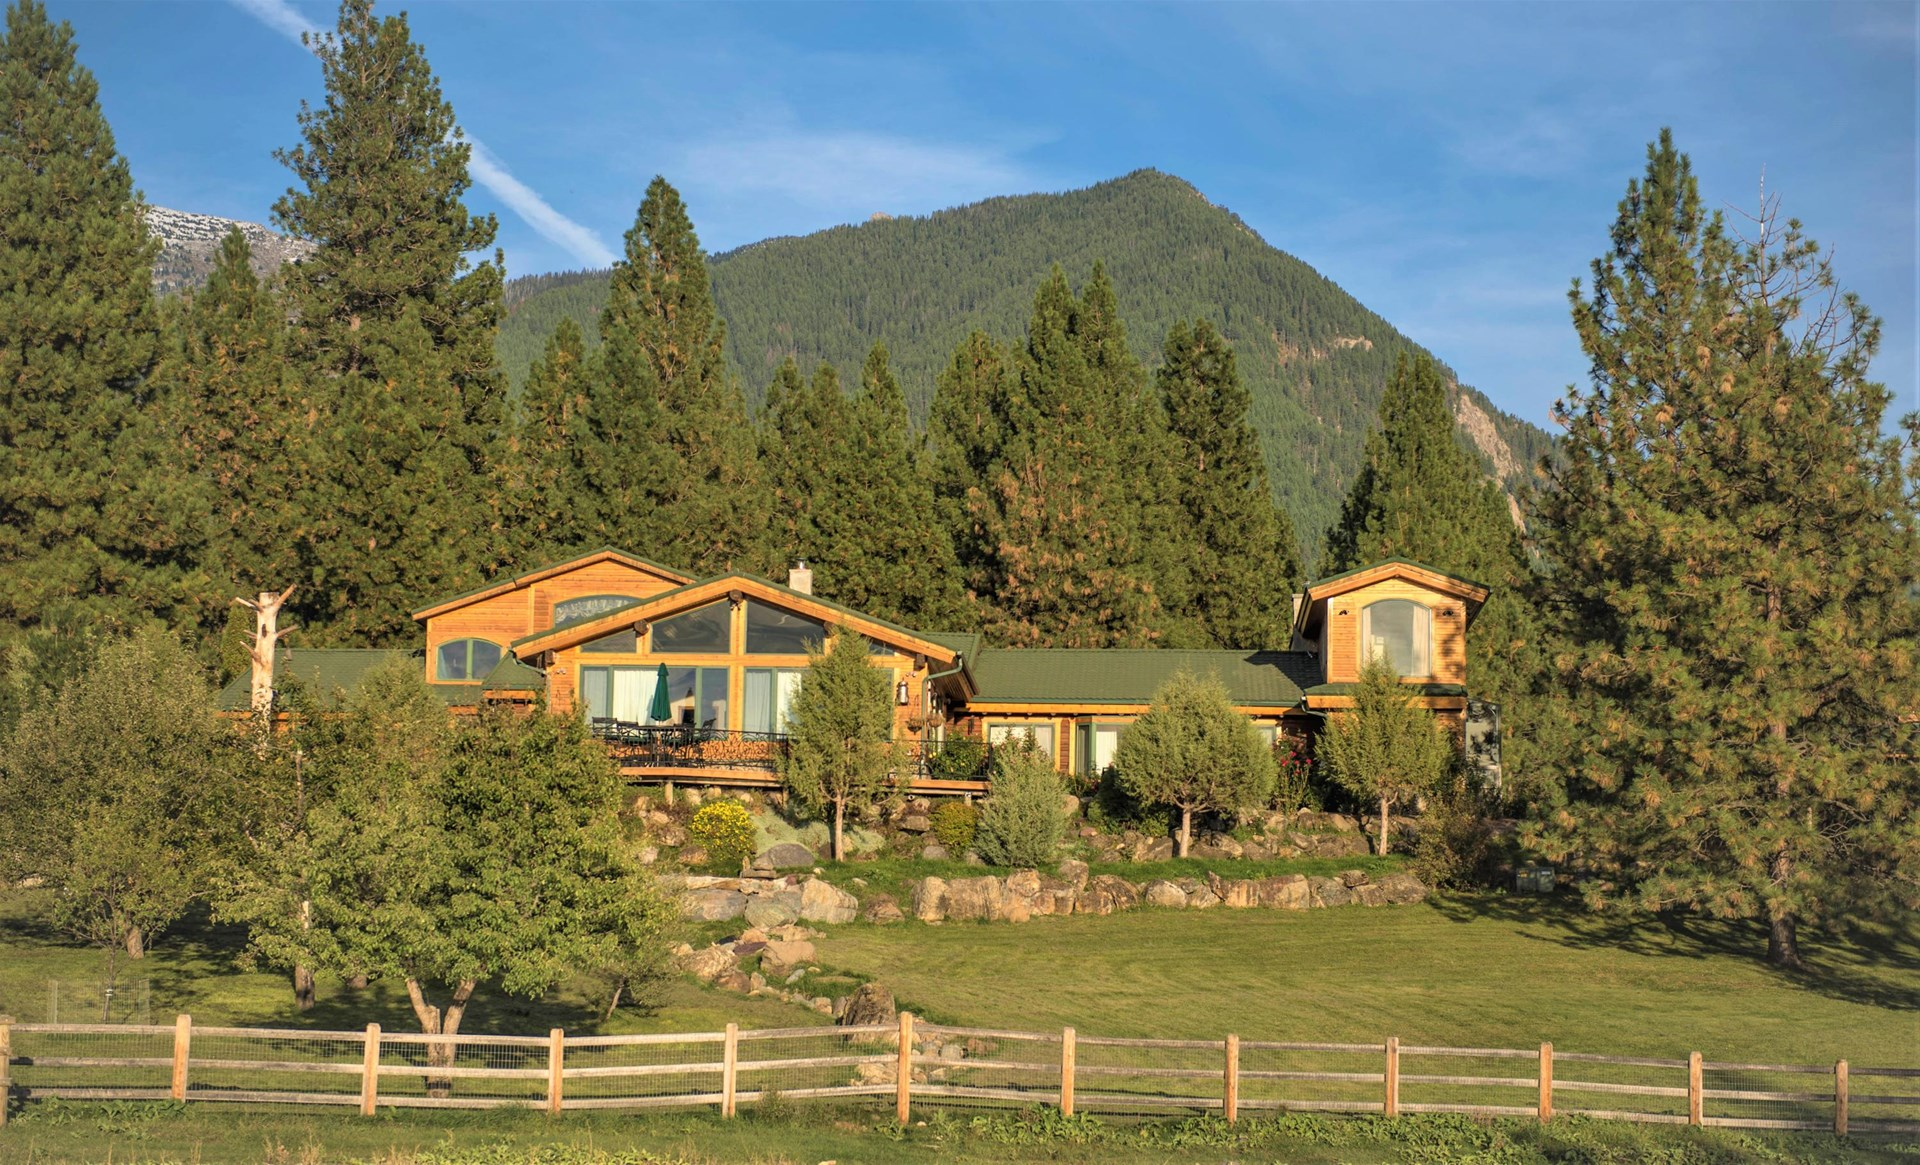 MISSION MOUNTAIN RETREAT NORTHWEST MONTANA FOR SALE